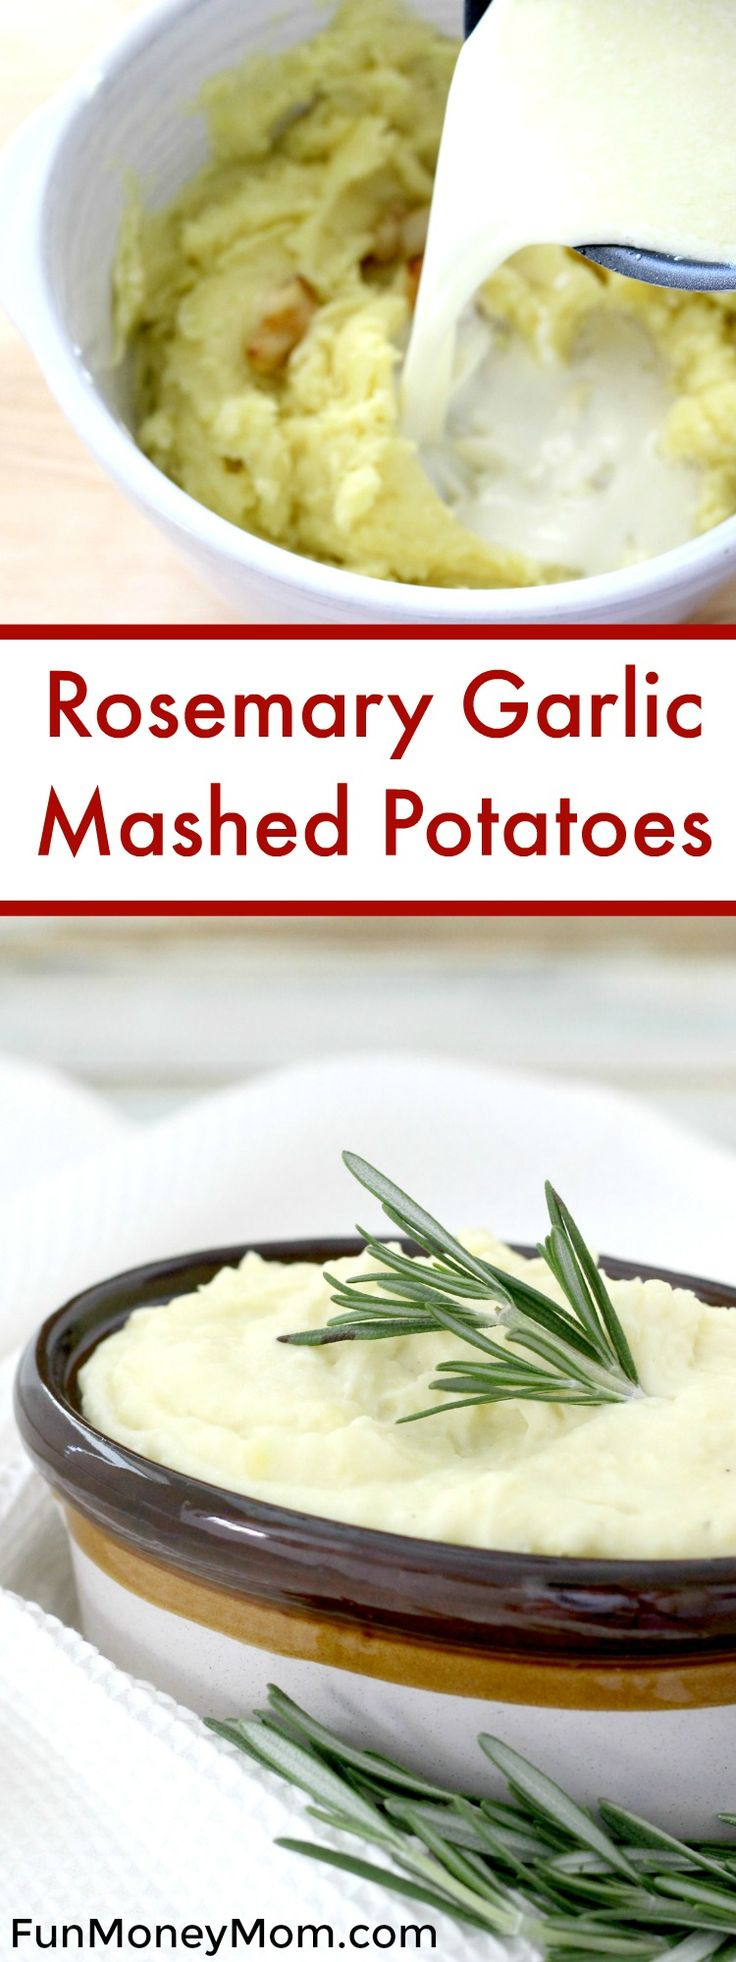 Want a delicious recipe that goes perfectly with both a holiday meal and your everyday dinner? These Rosemary Garlic Mashed Potatoes are the perfect side dish for any occasion. via @funmoneymom